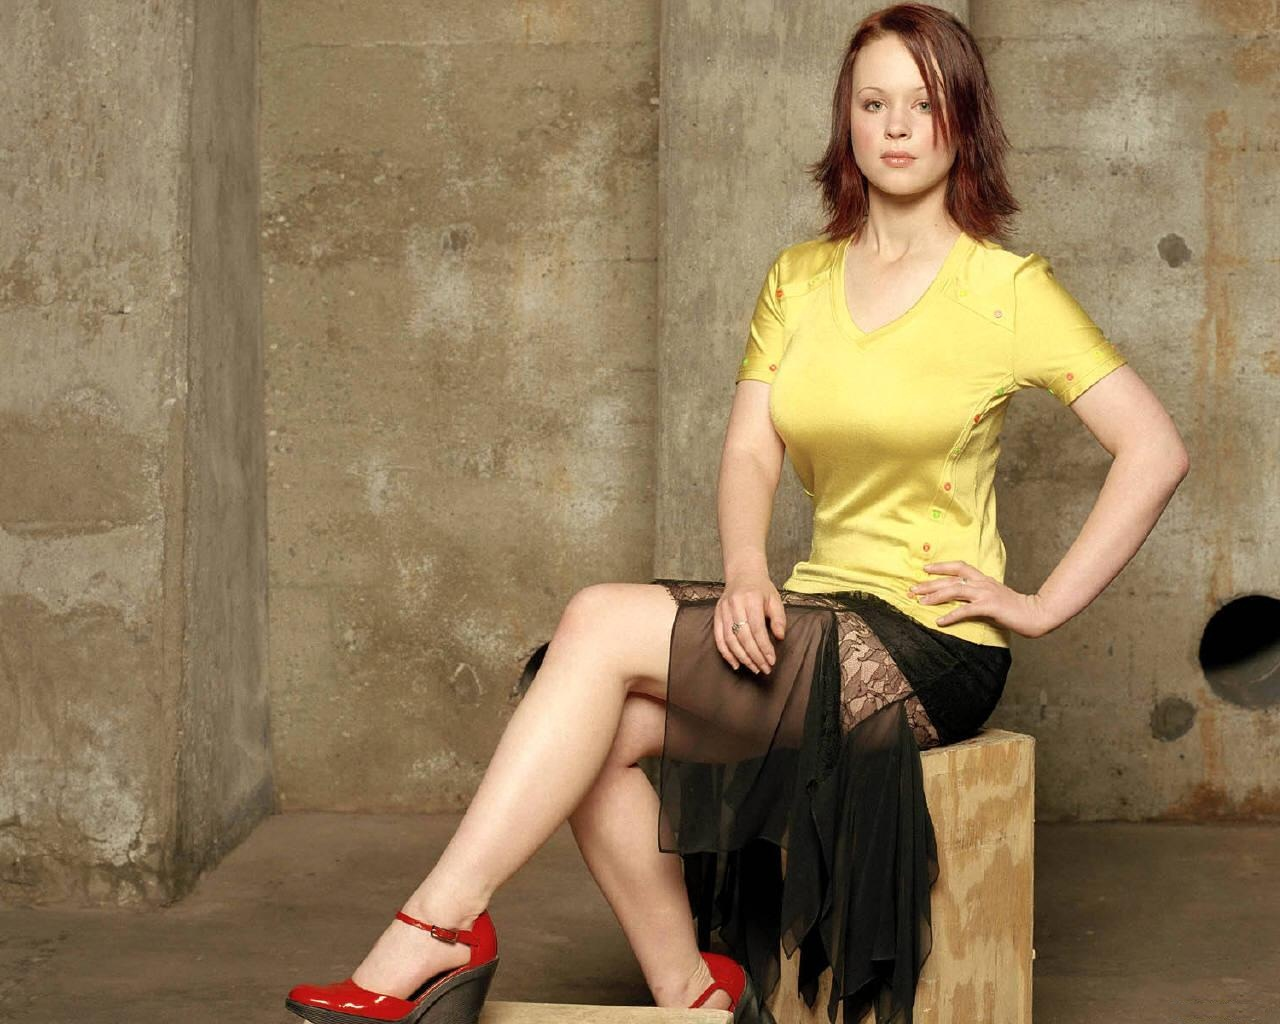 Thora Birch HD Wallpaper | Thora Birch Images | Cool Wallpapers 374